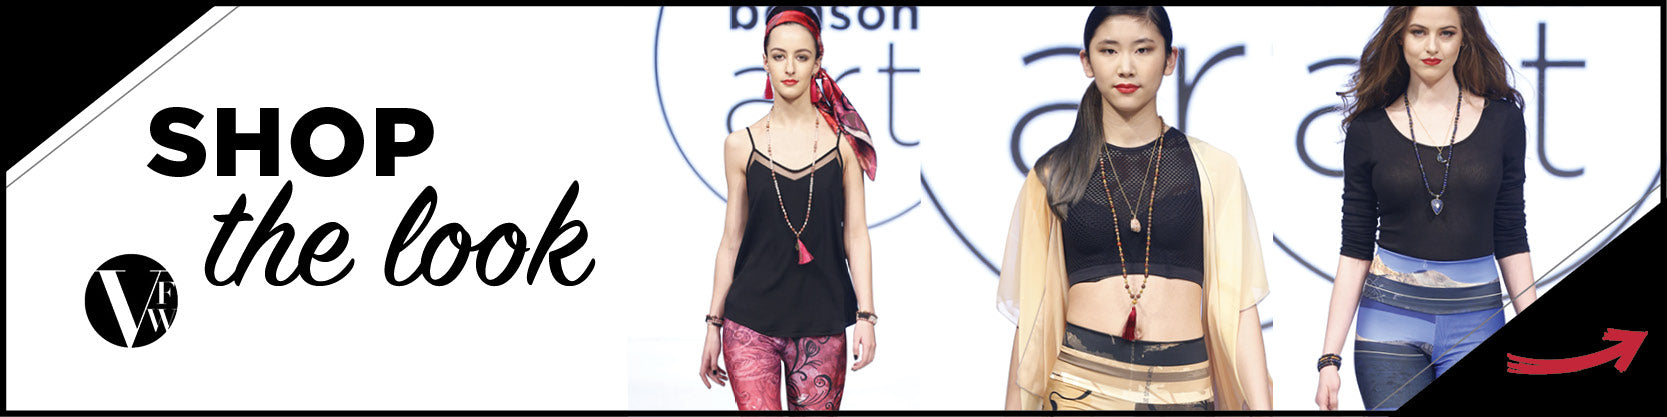 Shop the Look - Vancouver Fashion Week and Kristina Benson Art - Yoga Leggings